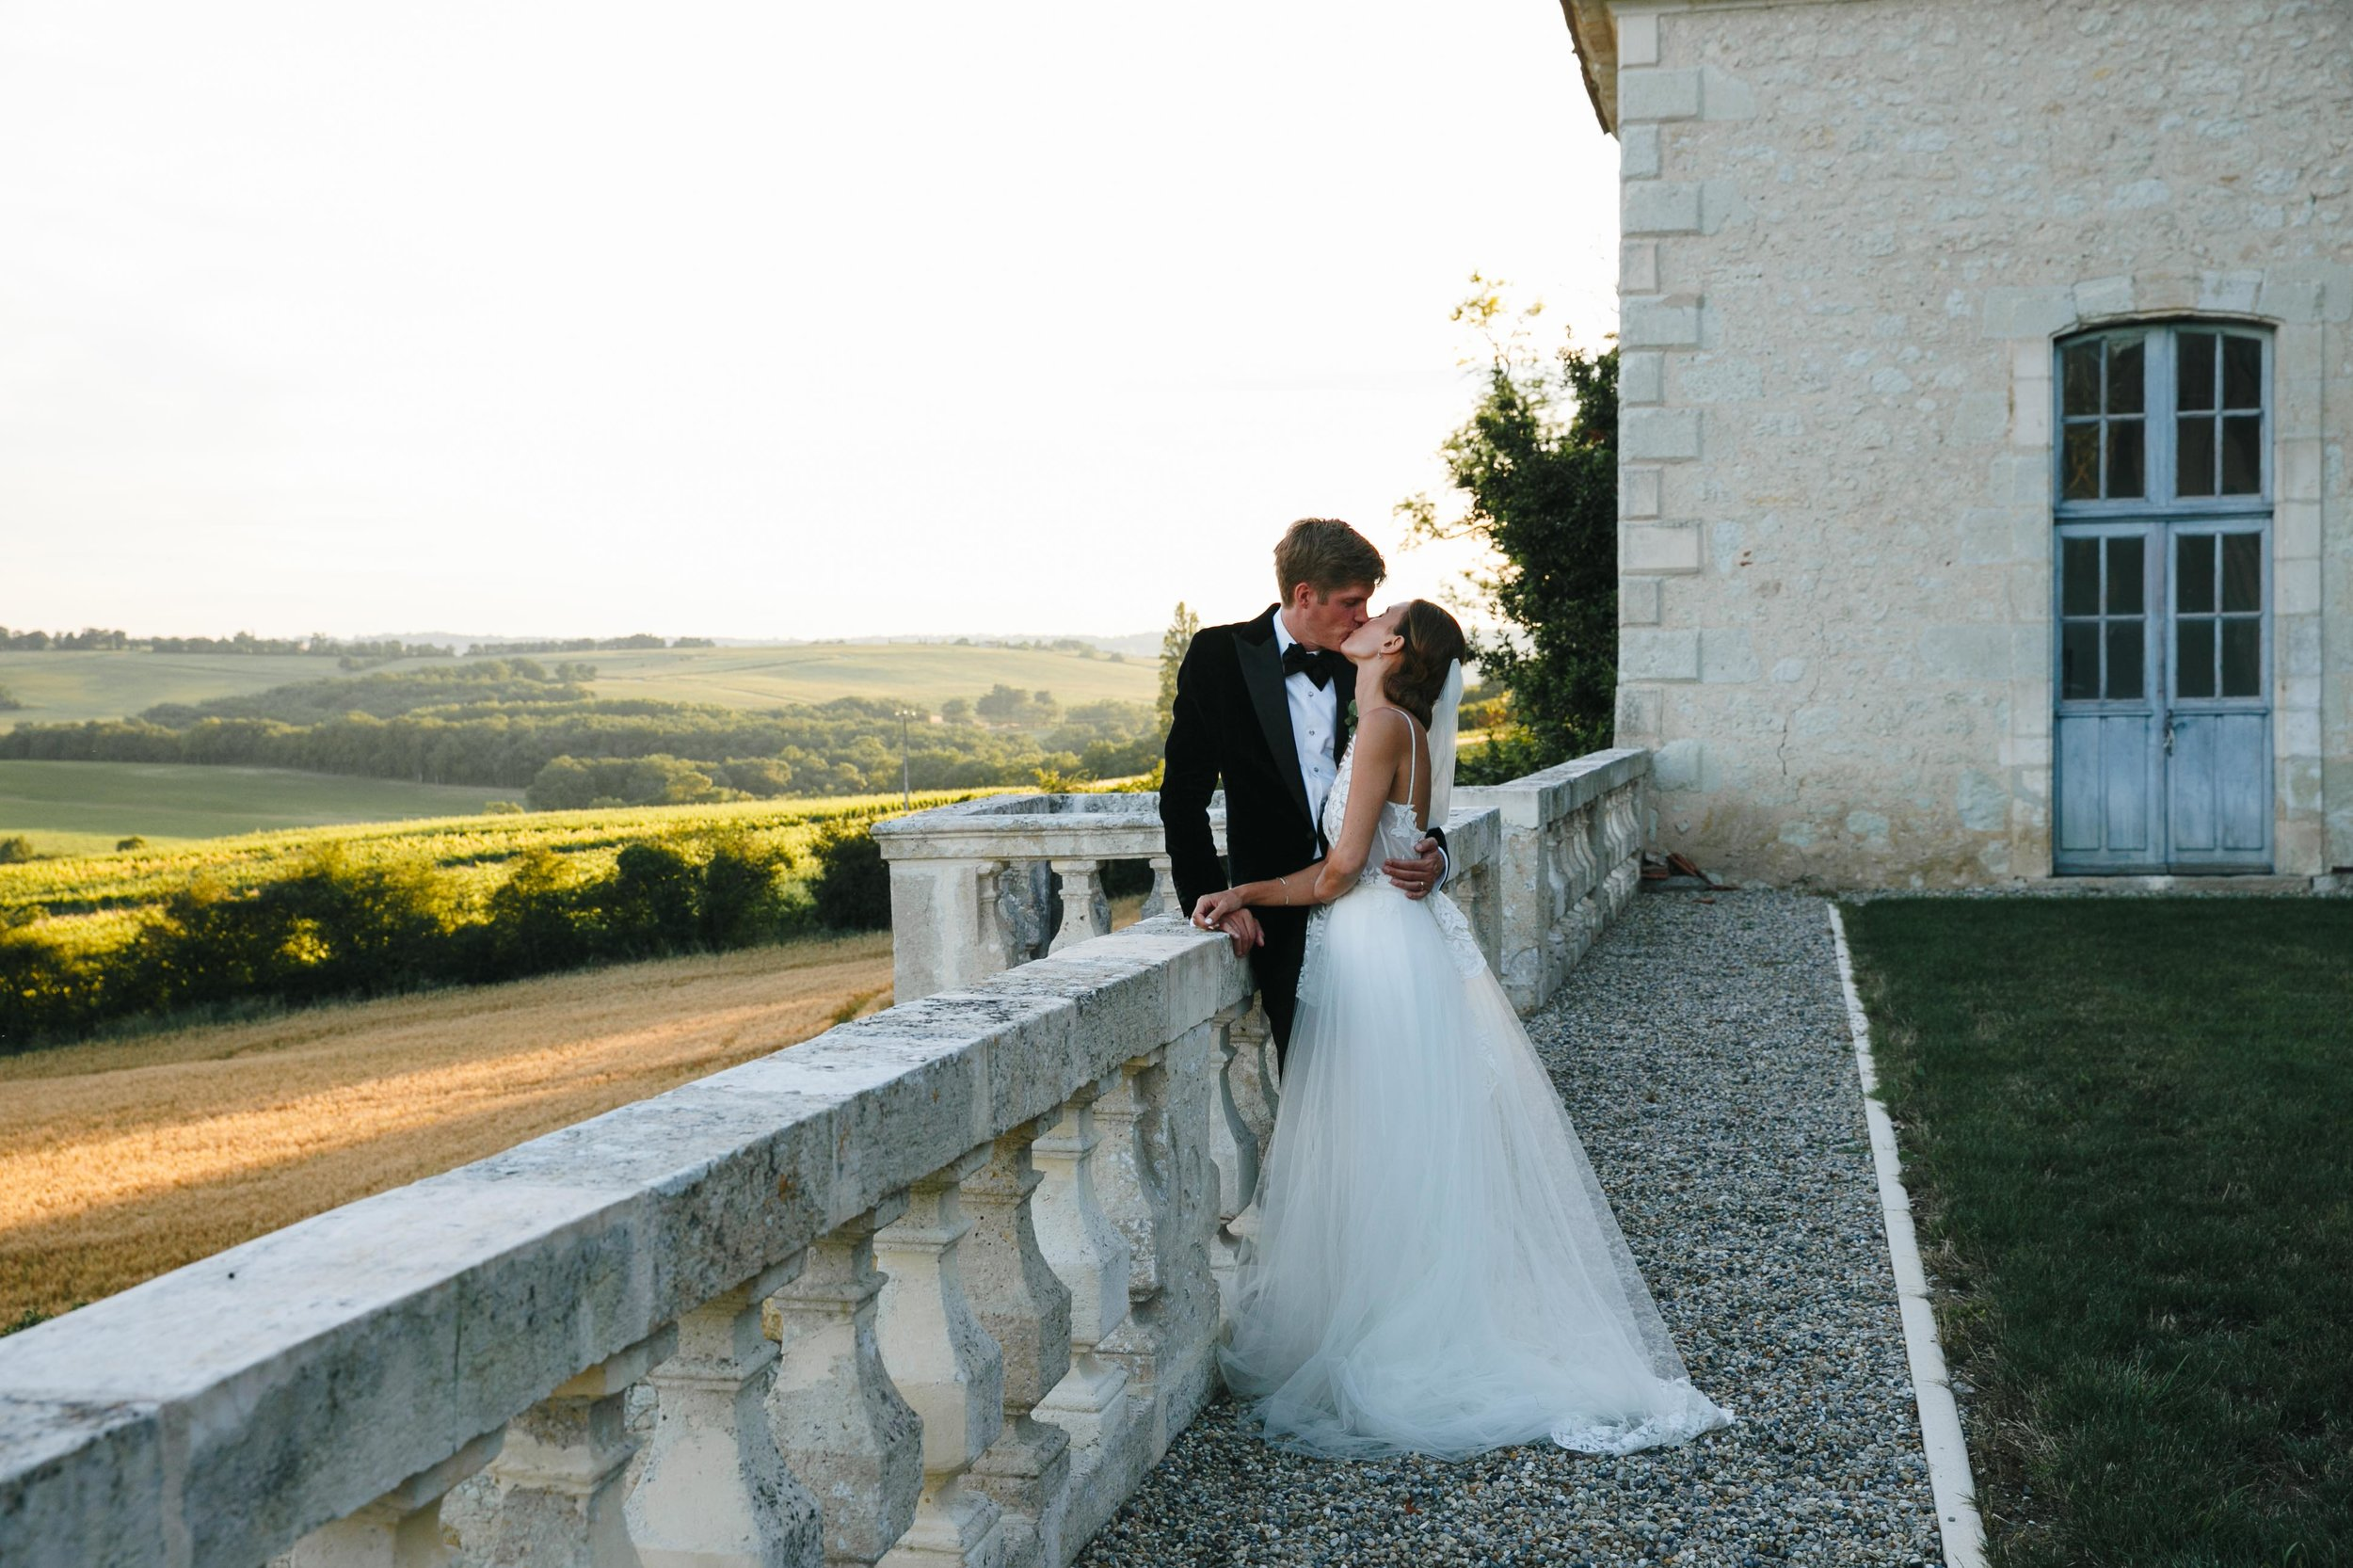 Steph Max South of France Wedding lr-905.jpg